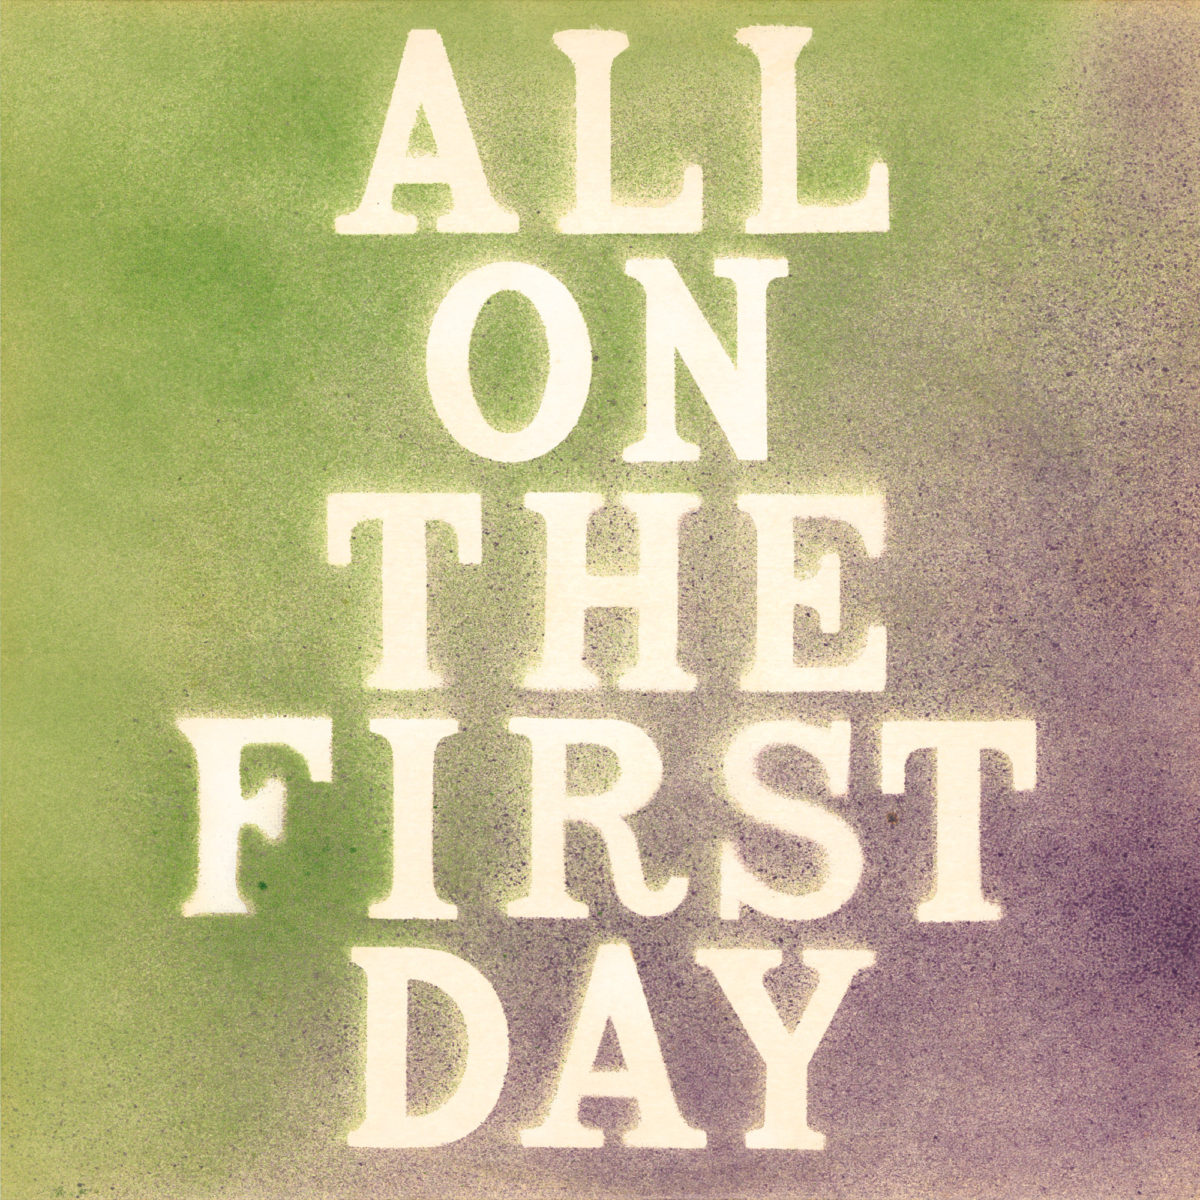 Cover faan't album All on the First Day faan Tony Caro & John © Tapete Records